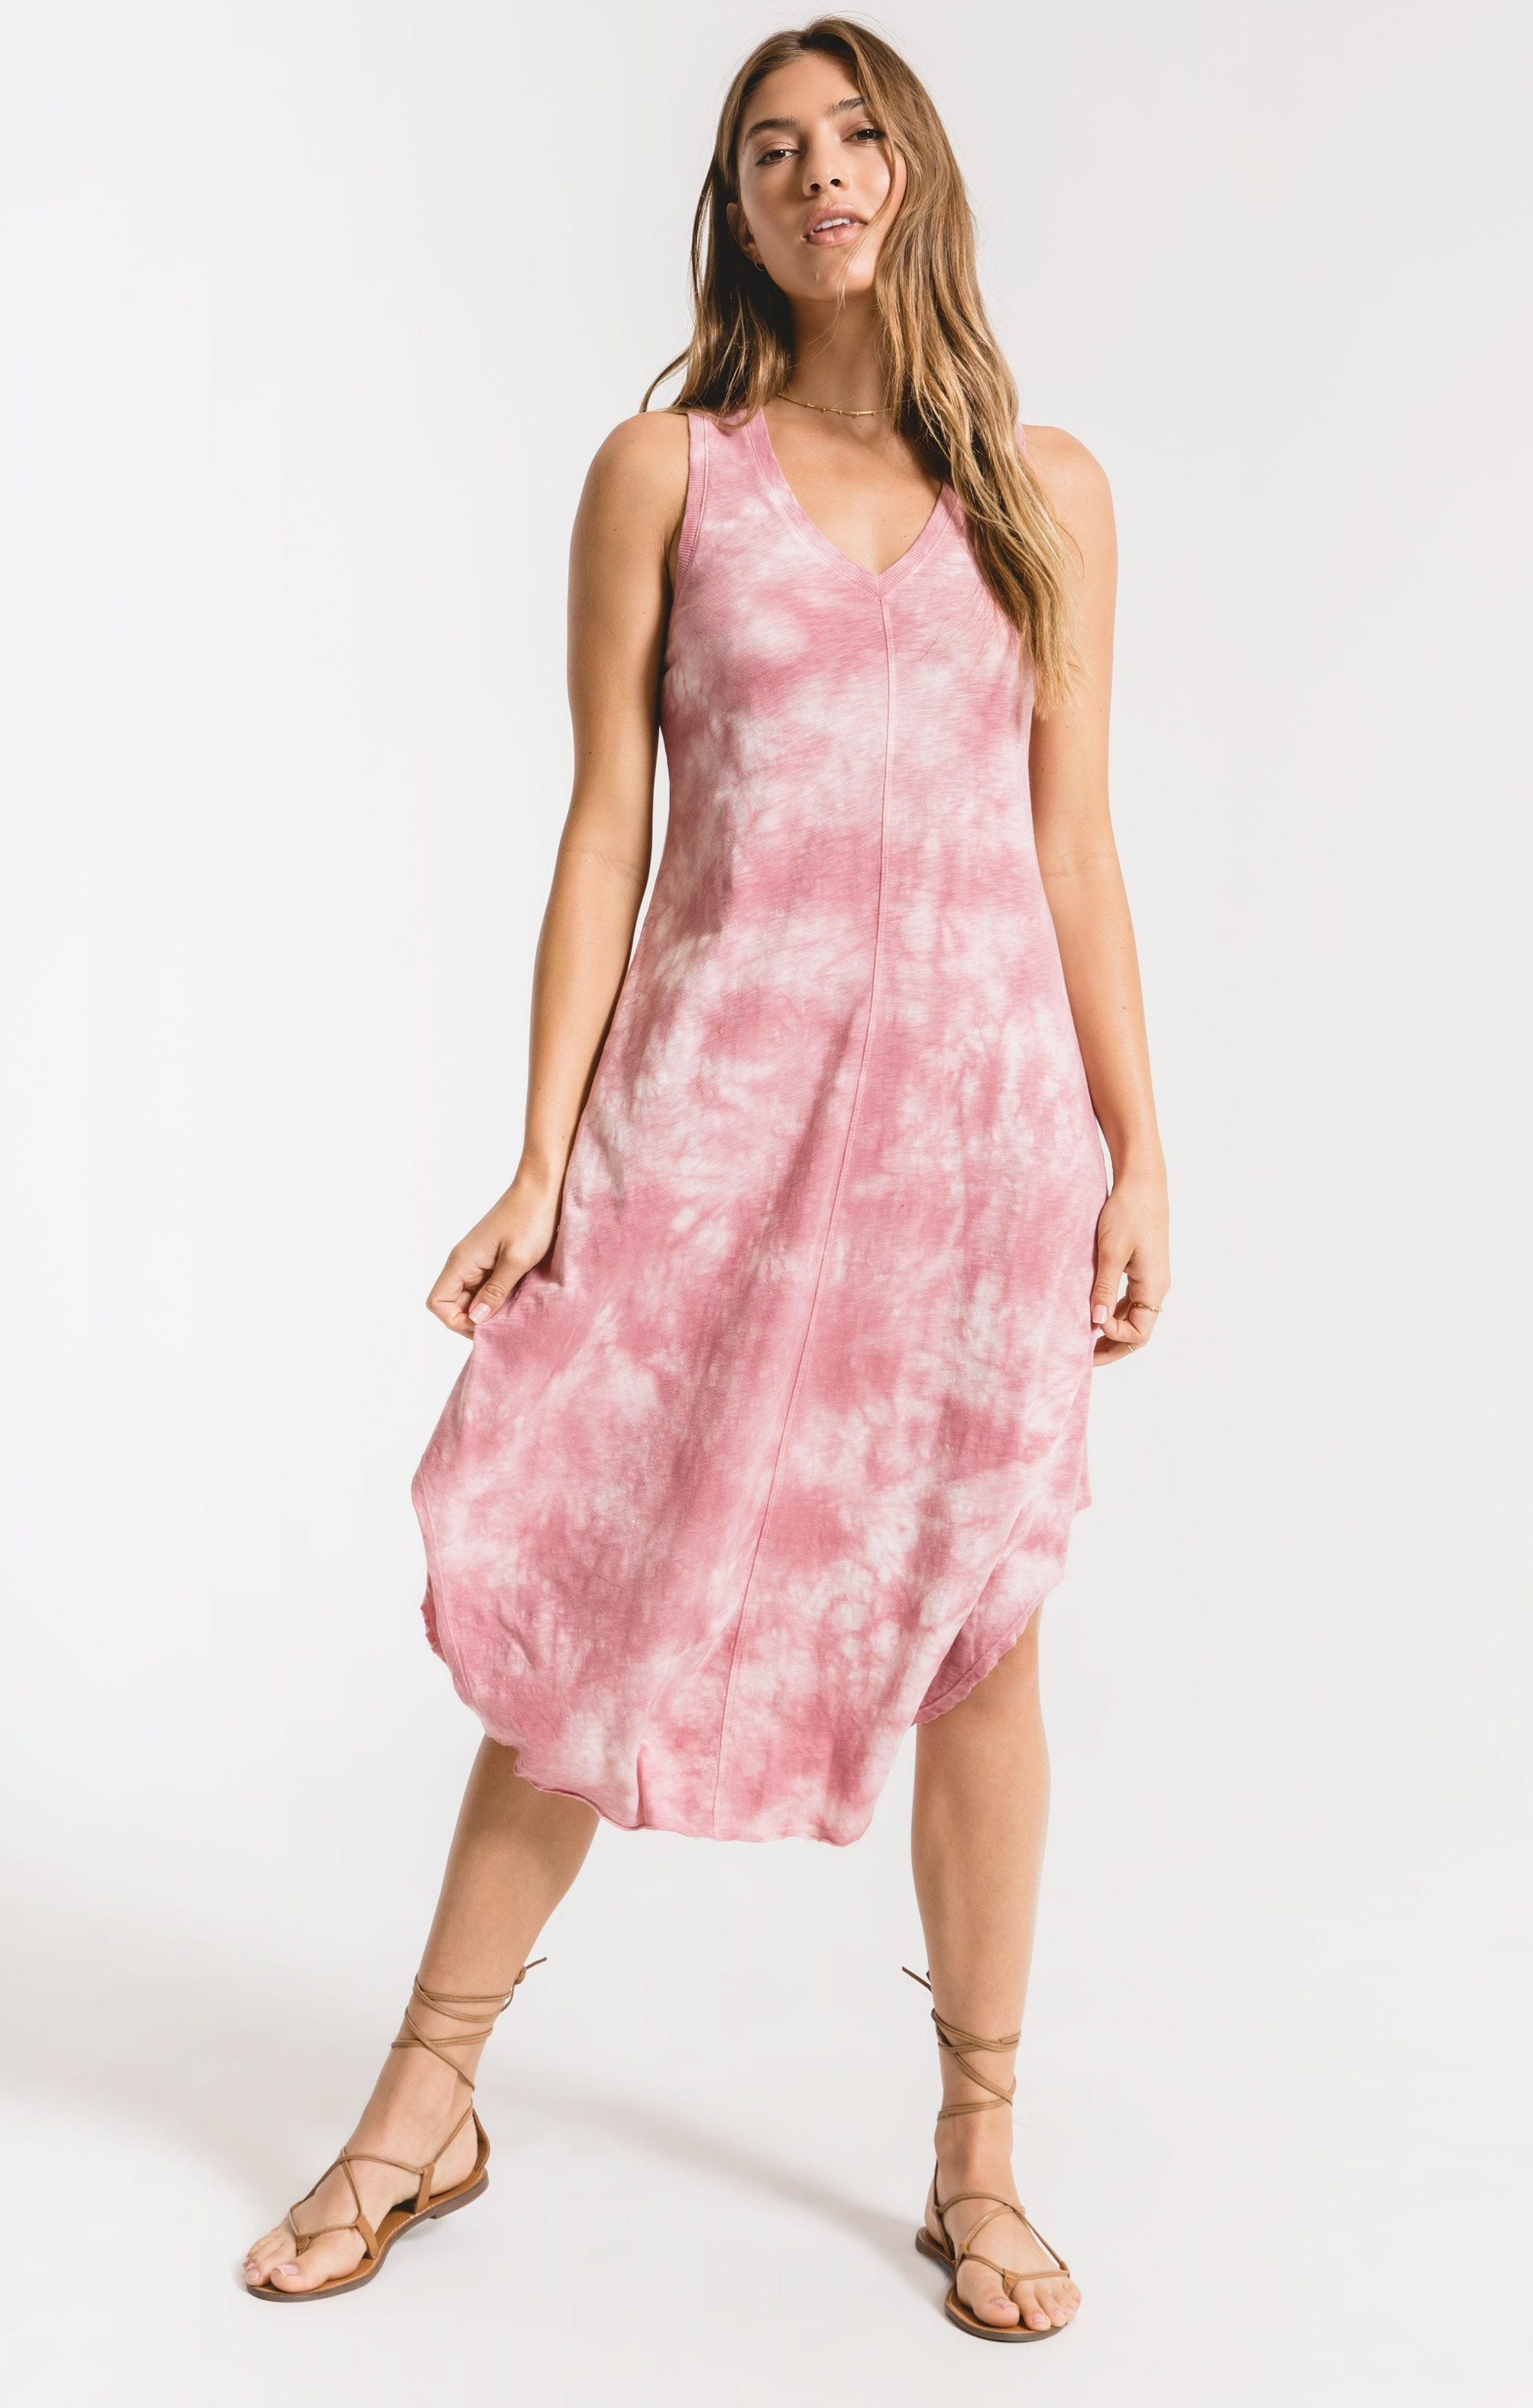 Dresses Cloud Tie-Dye Reverie Dress Zephyr Pink